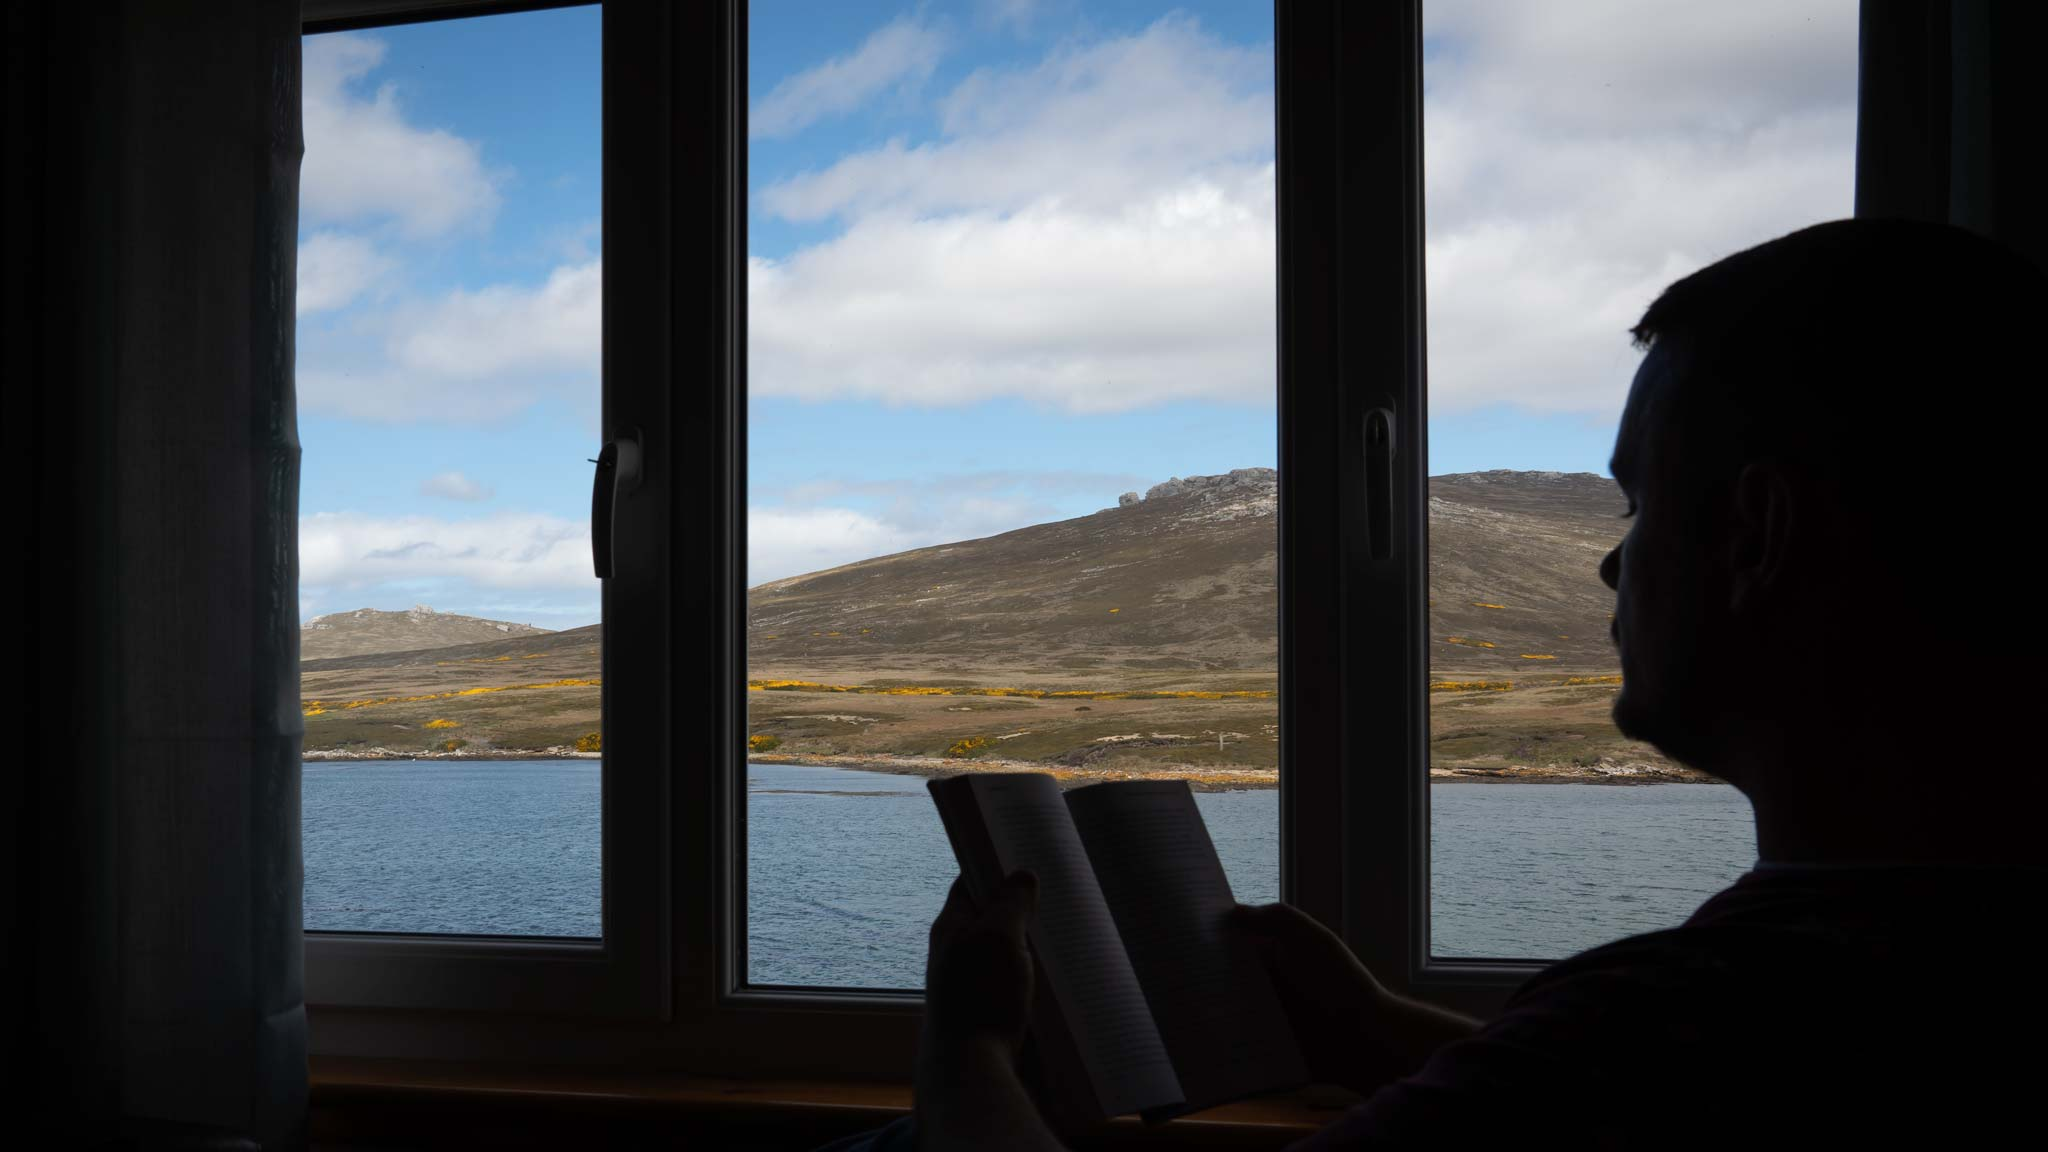 Enjoying a book and the views on Weddell Island